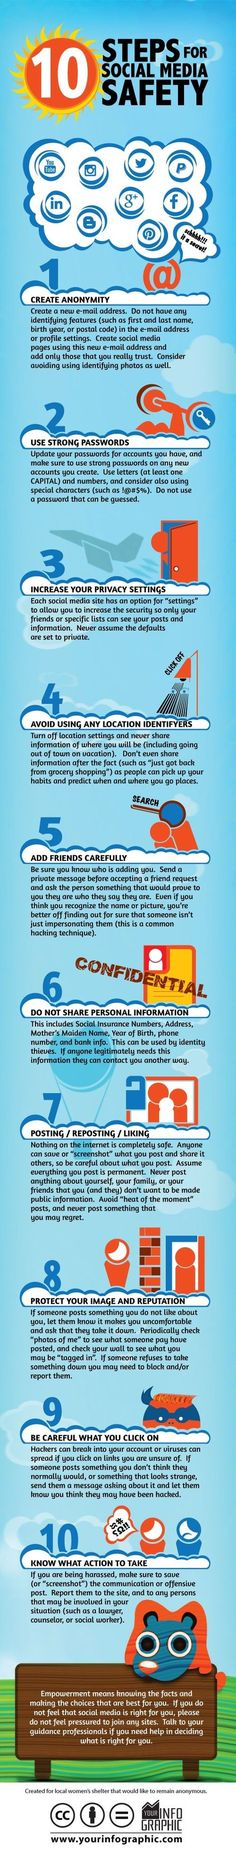 Social Media Safety Infographic: 10 Simple Steps To Staying Safe On Social Networks Social Media Safety, Le Social, Social Media Trends, Social Networks, Social Security, Internet Marketing, Social Media Marketing, Digital Marketing, Online Marketing